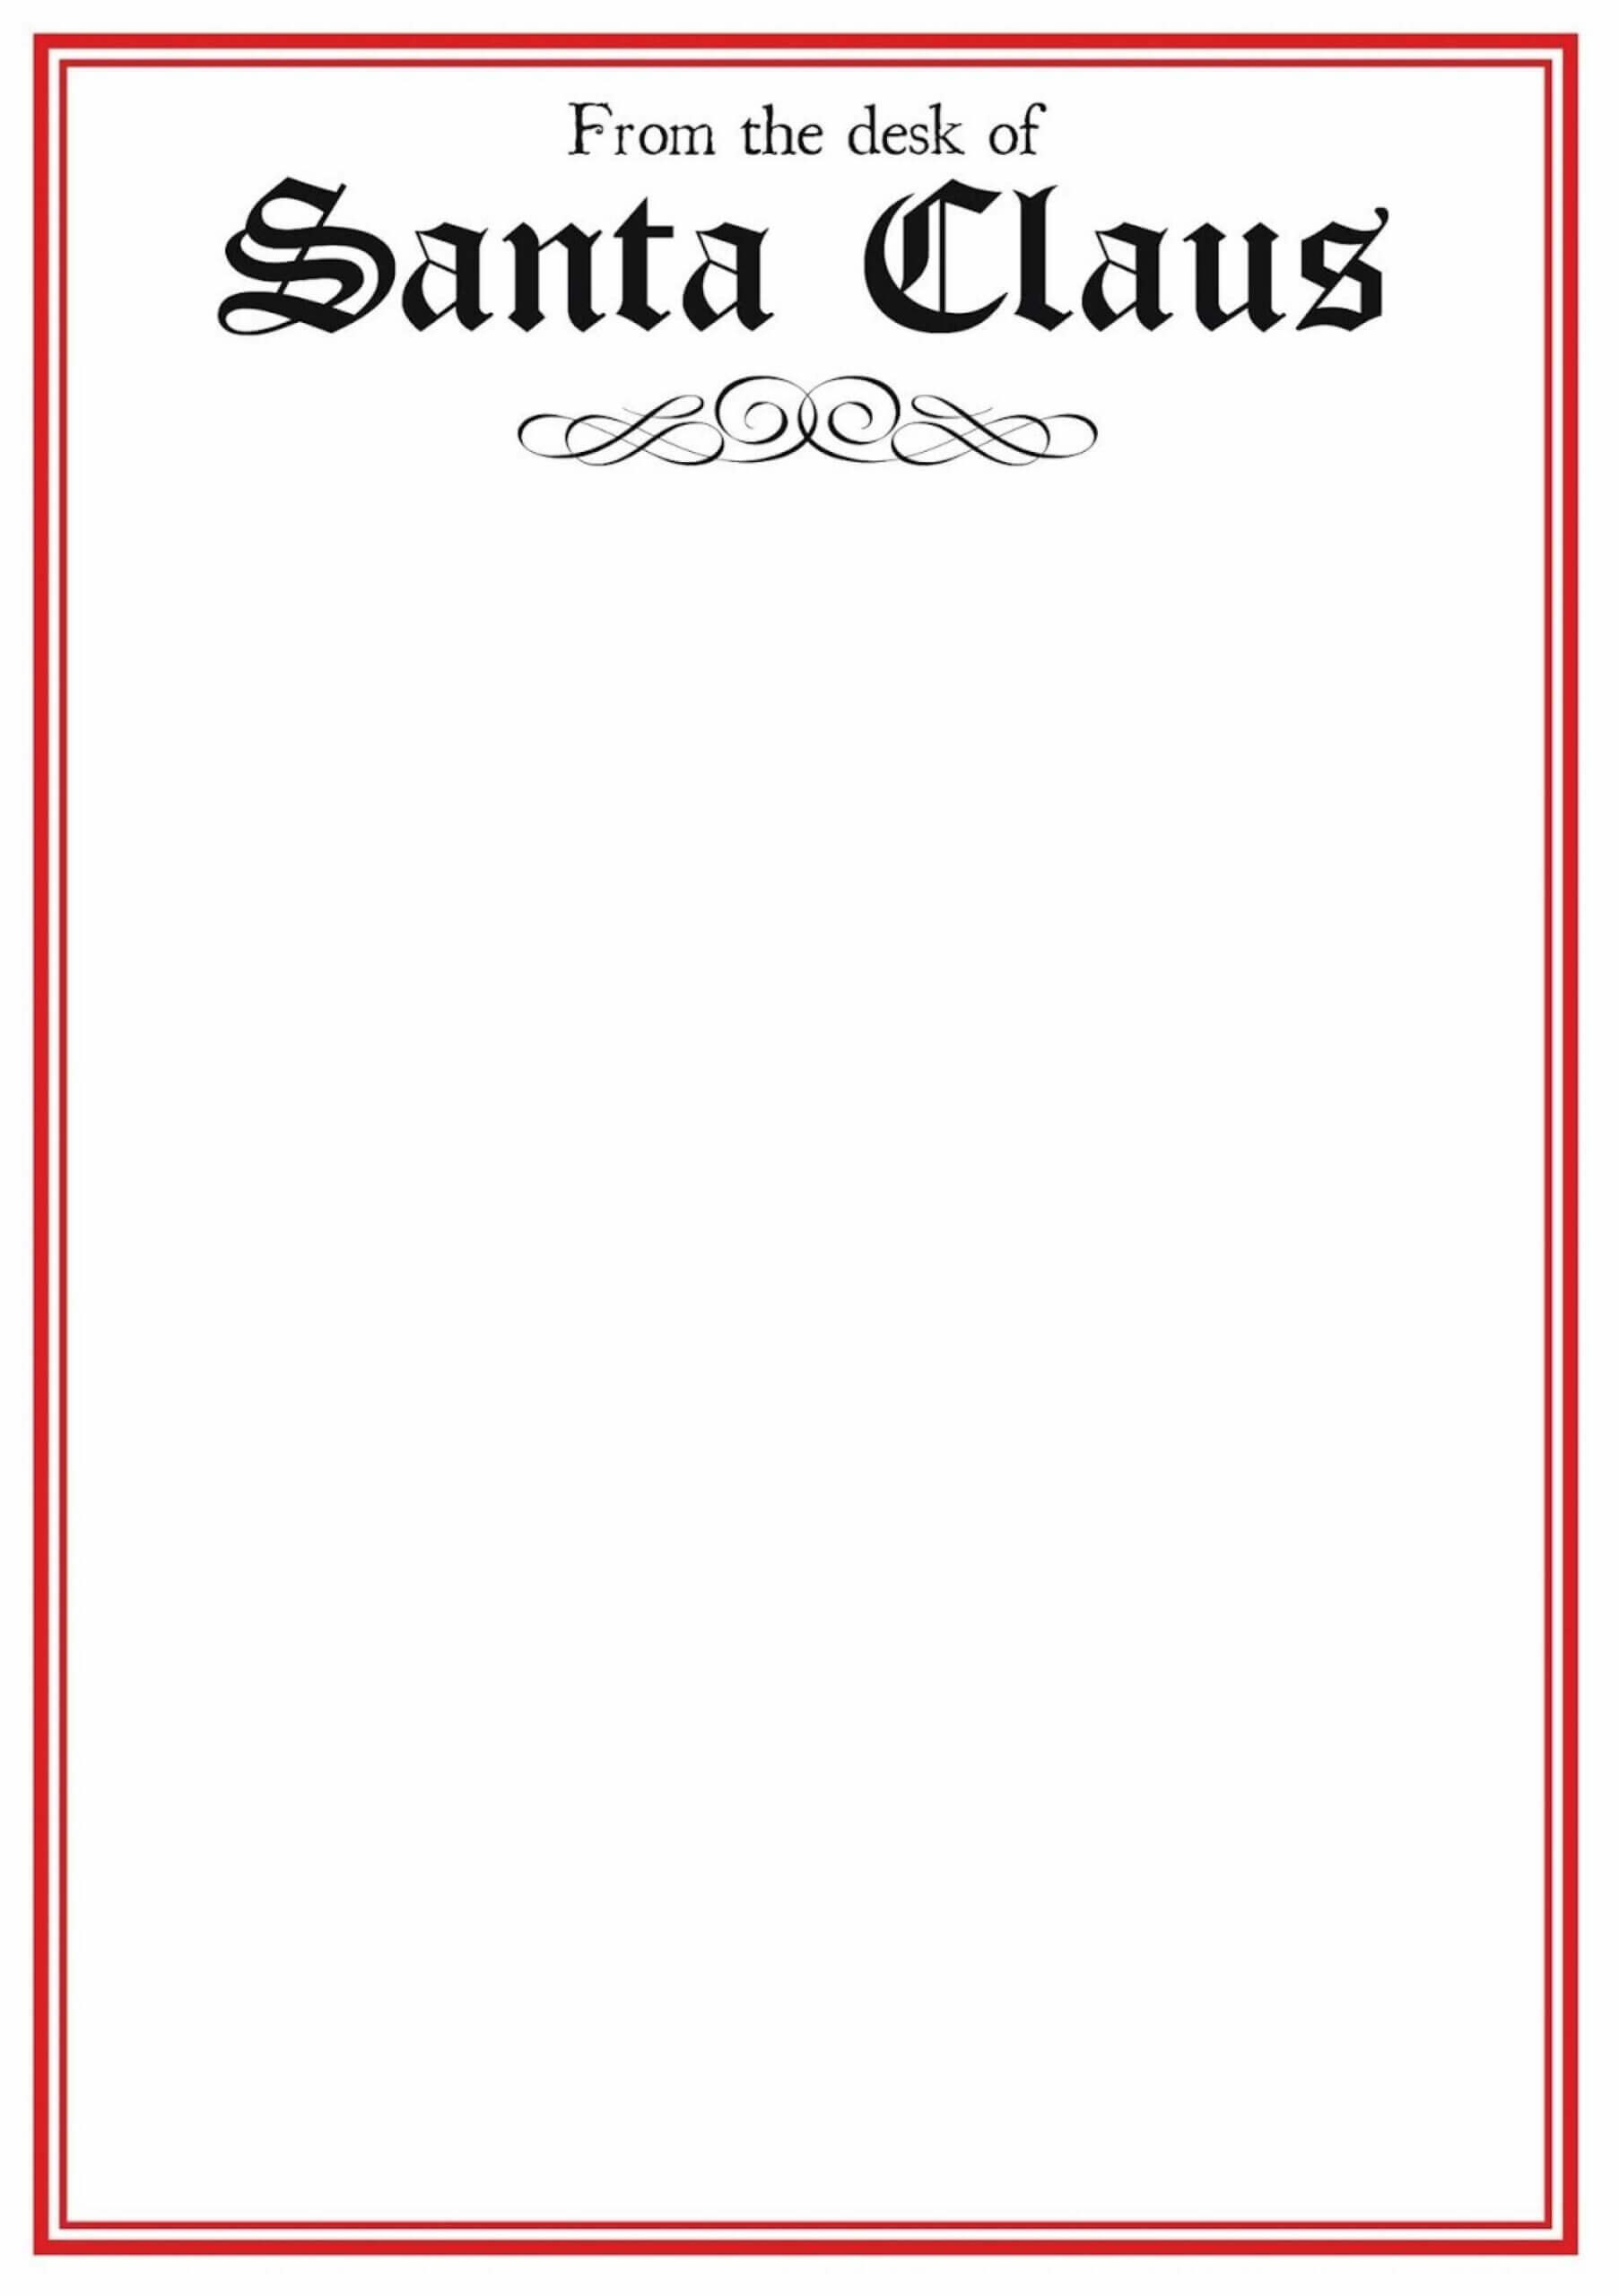 Fascinating Blank Letter From Santa Template Word Ideas With Blank Letter From Santa Template